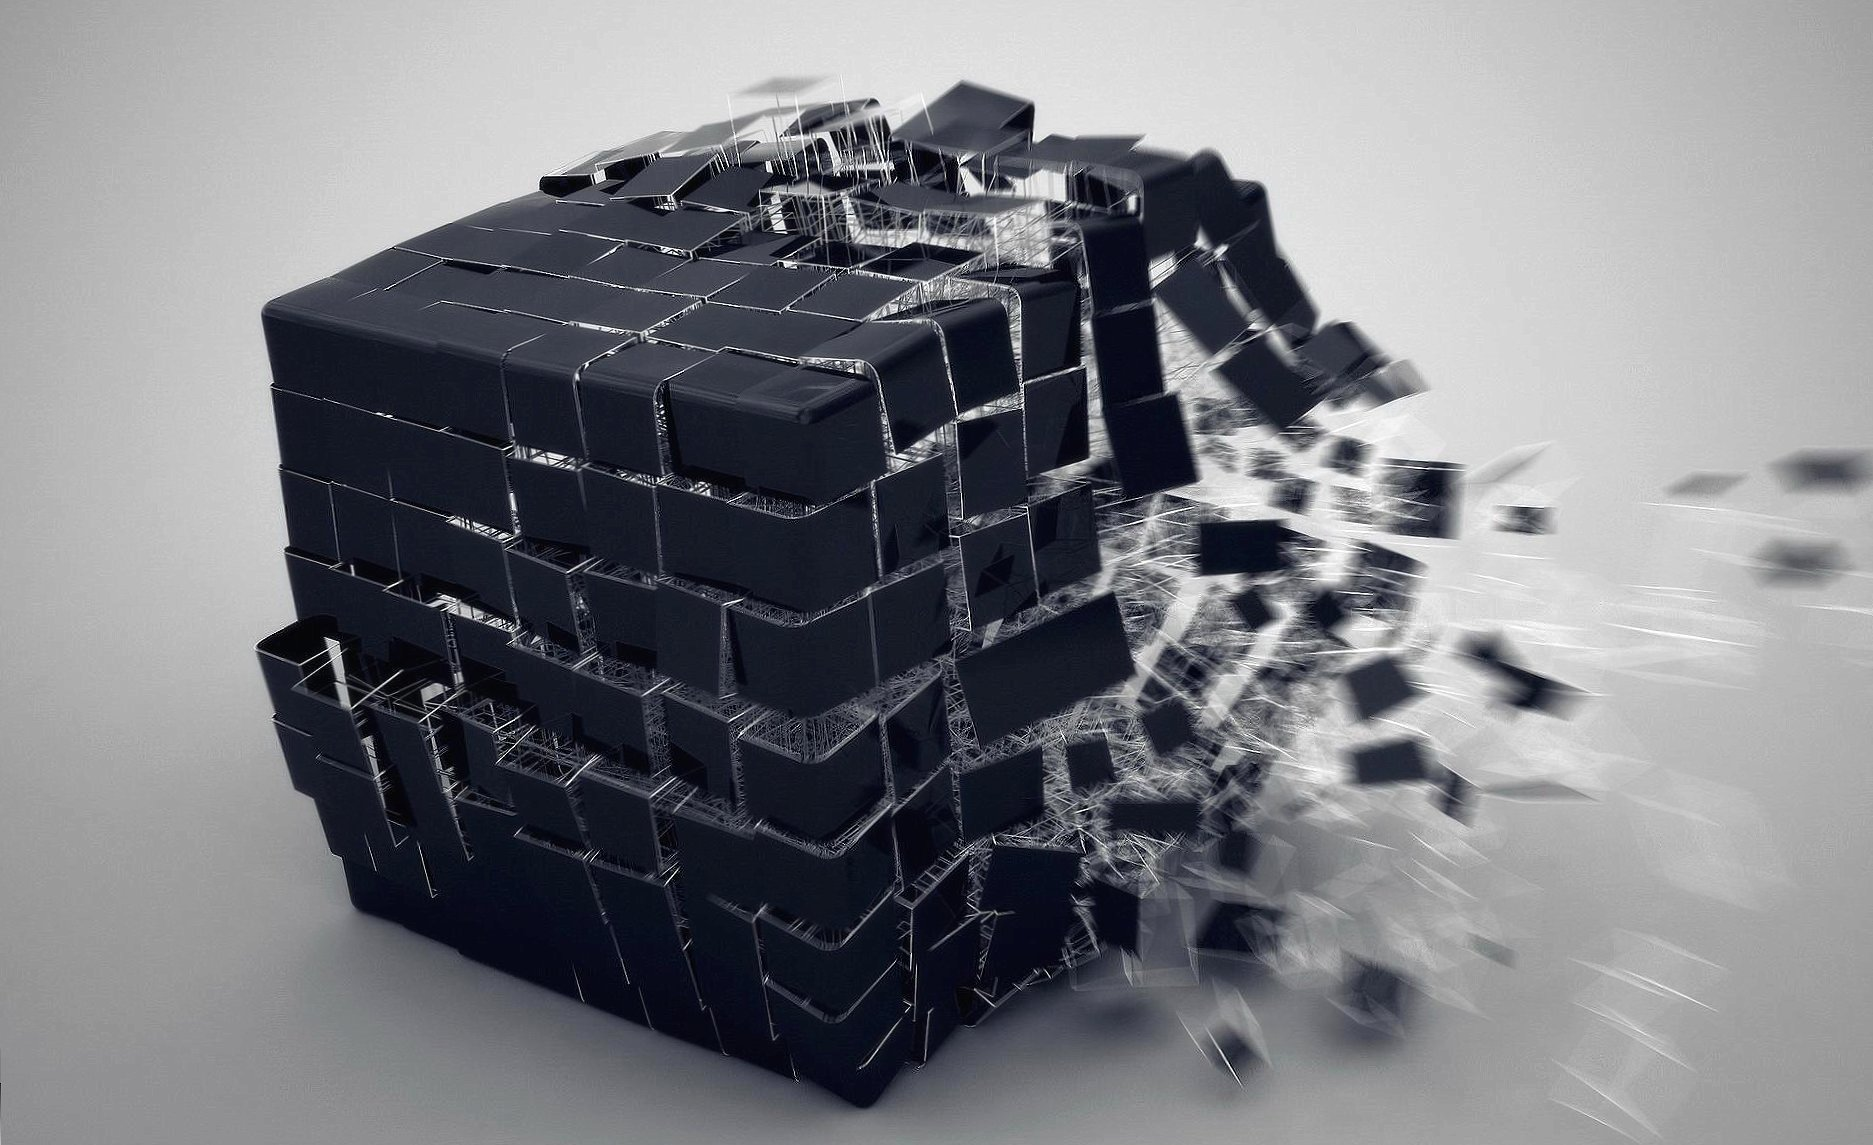 Black cube explosion 3d at 1600 x 1200 size wallpapers HD quality